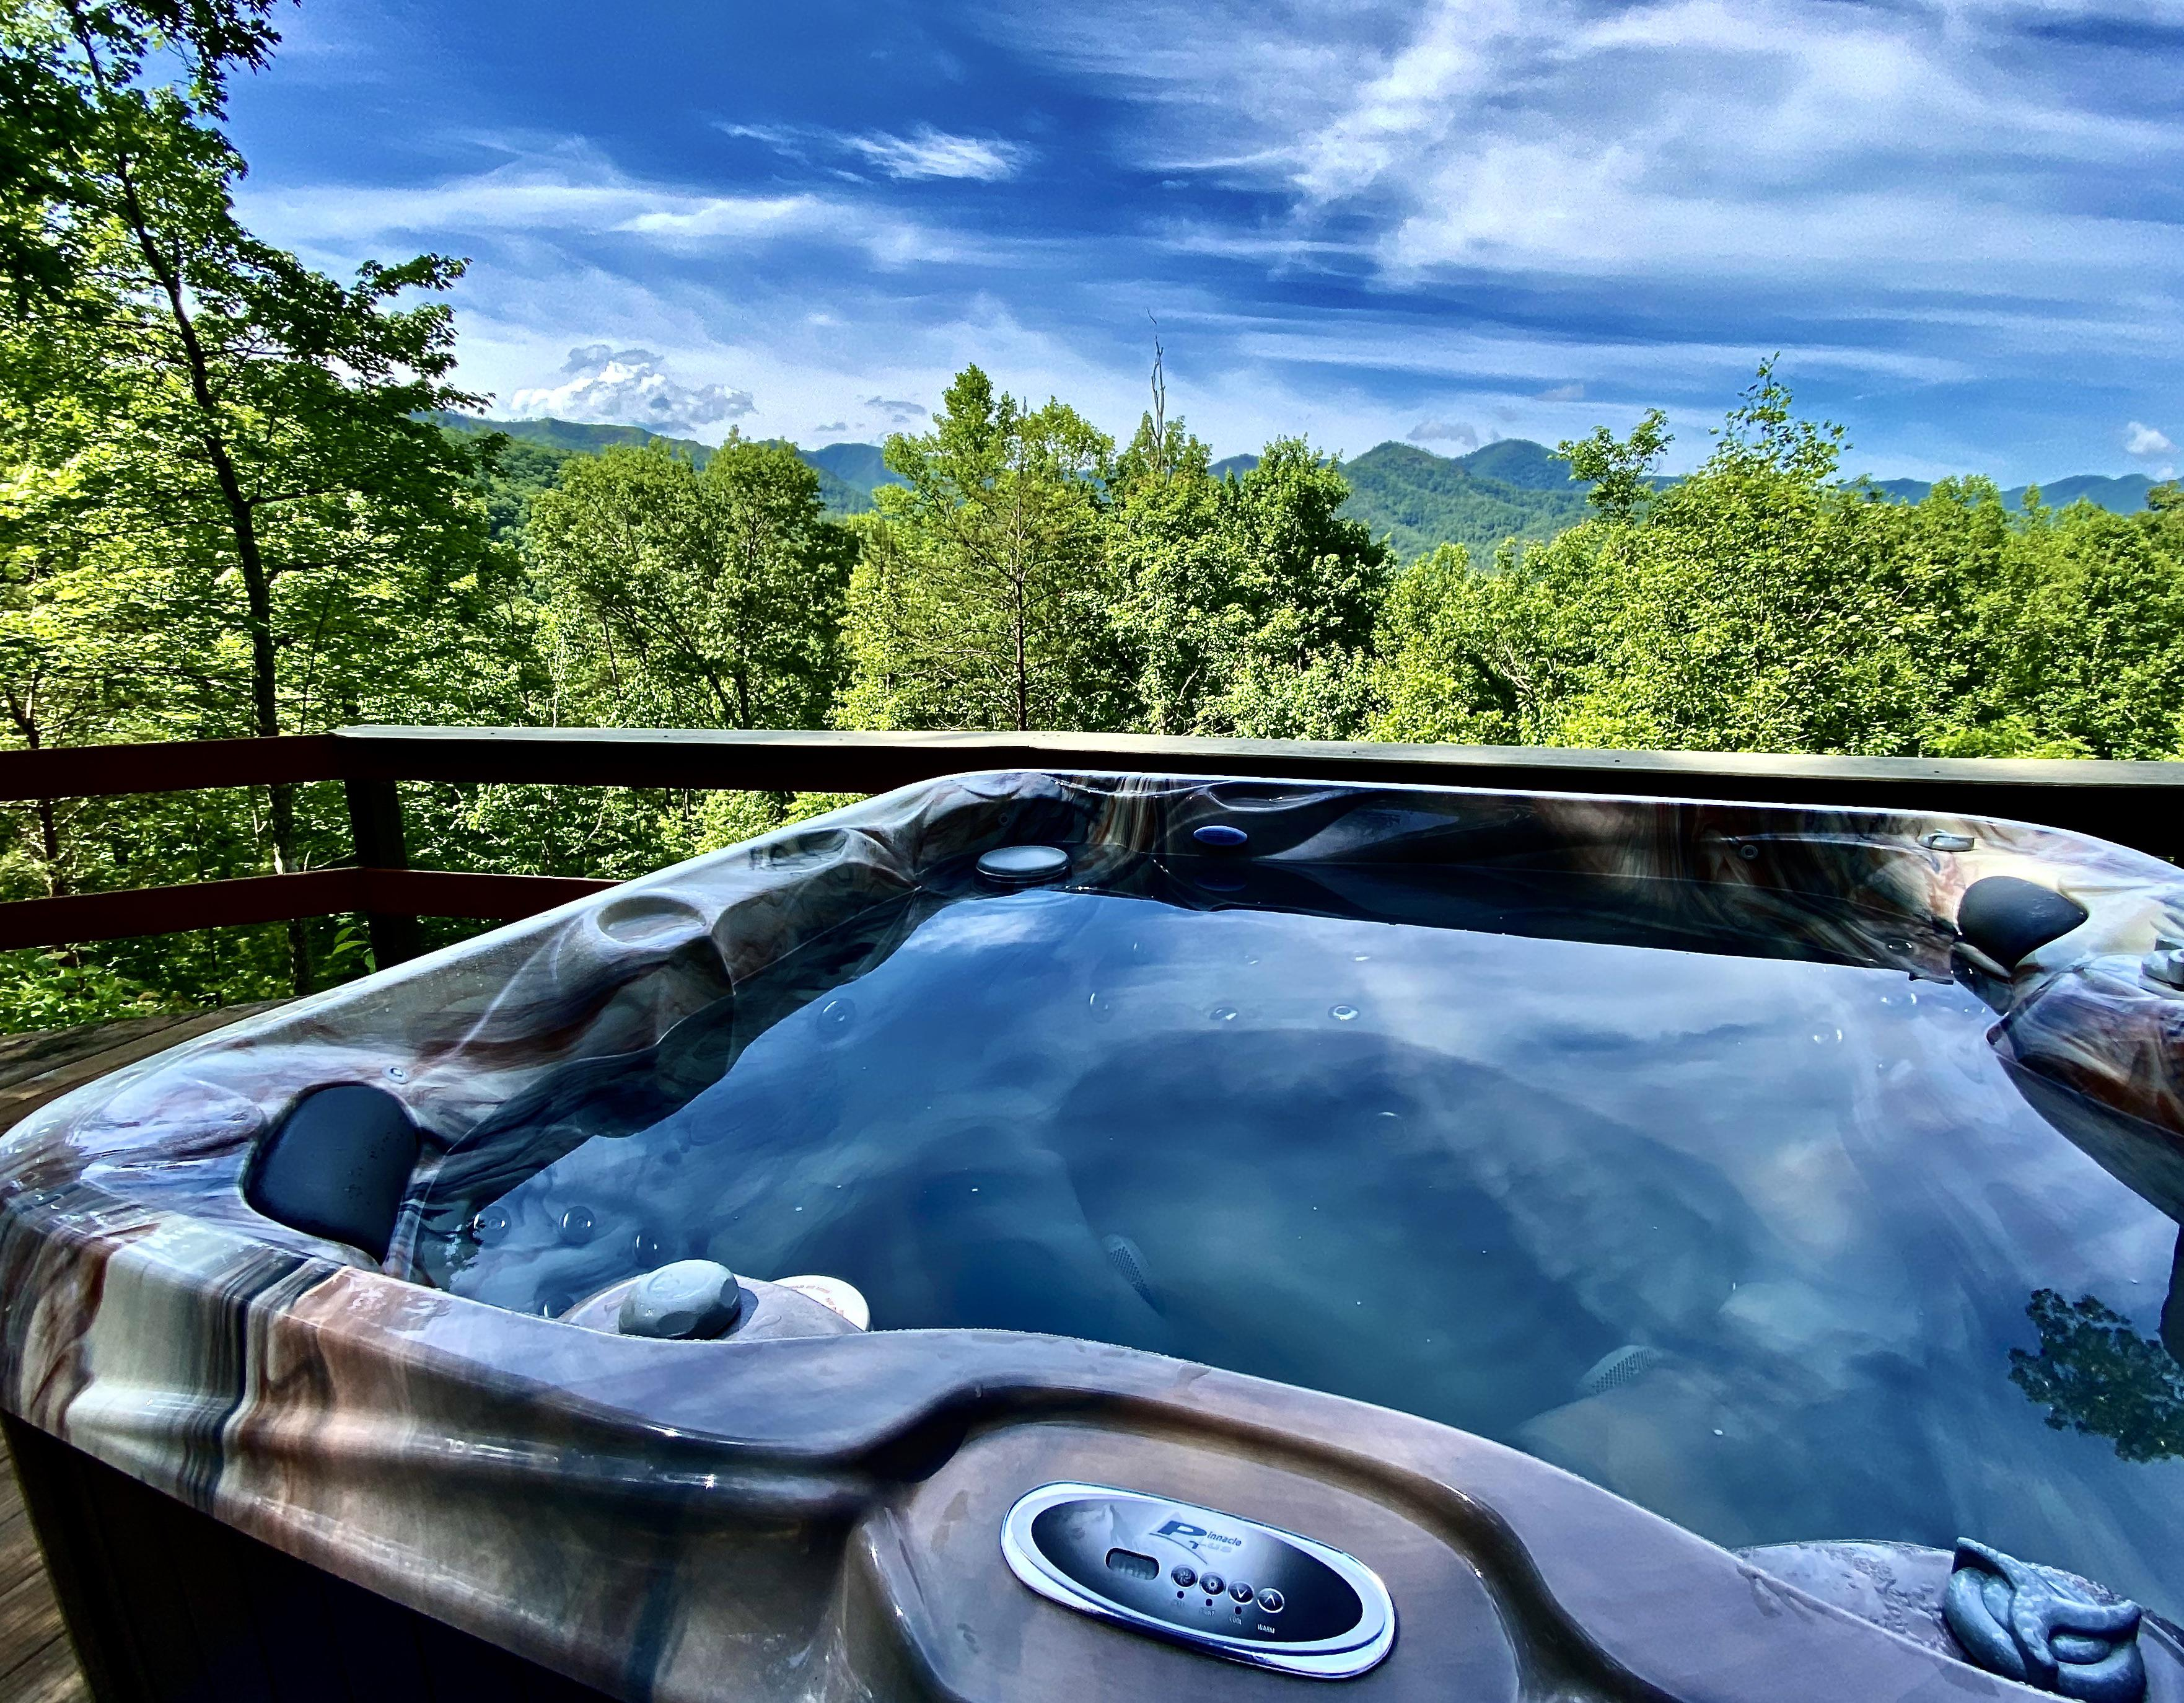 Star Gazing while relaxing in the New (2020) and Sparkling Hot Tub is Magical...